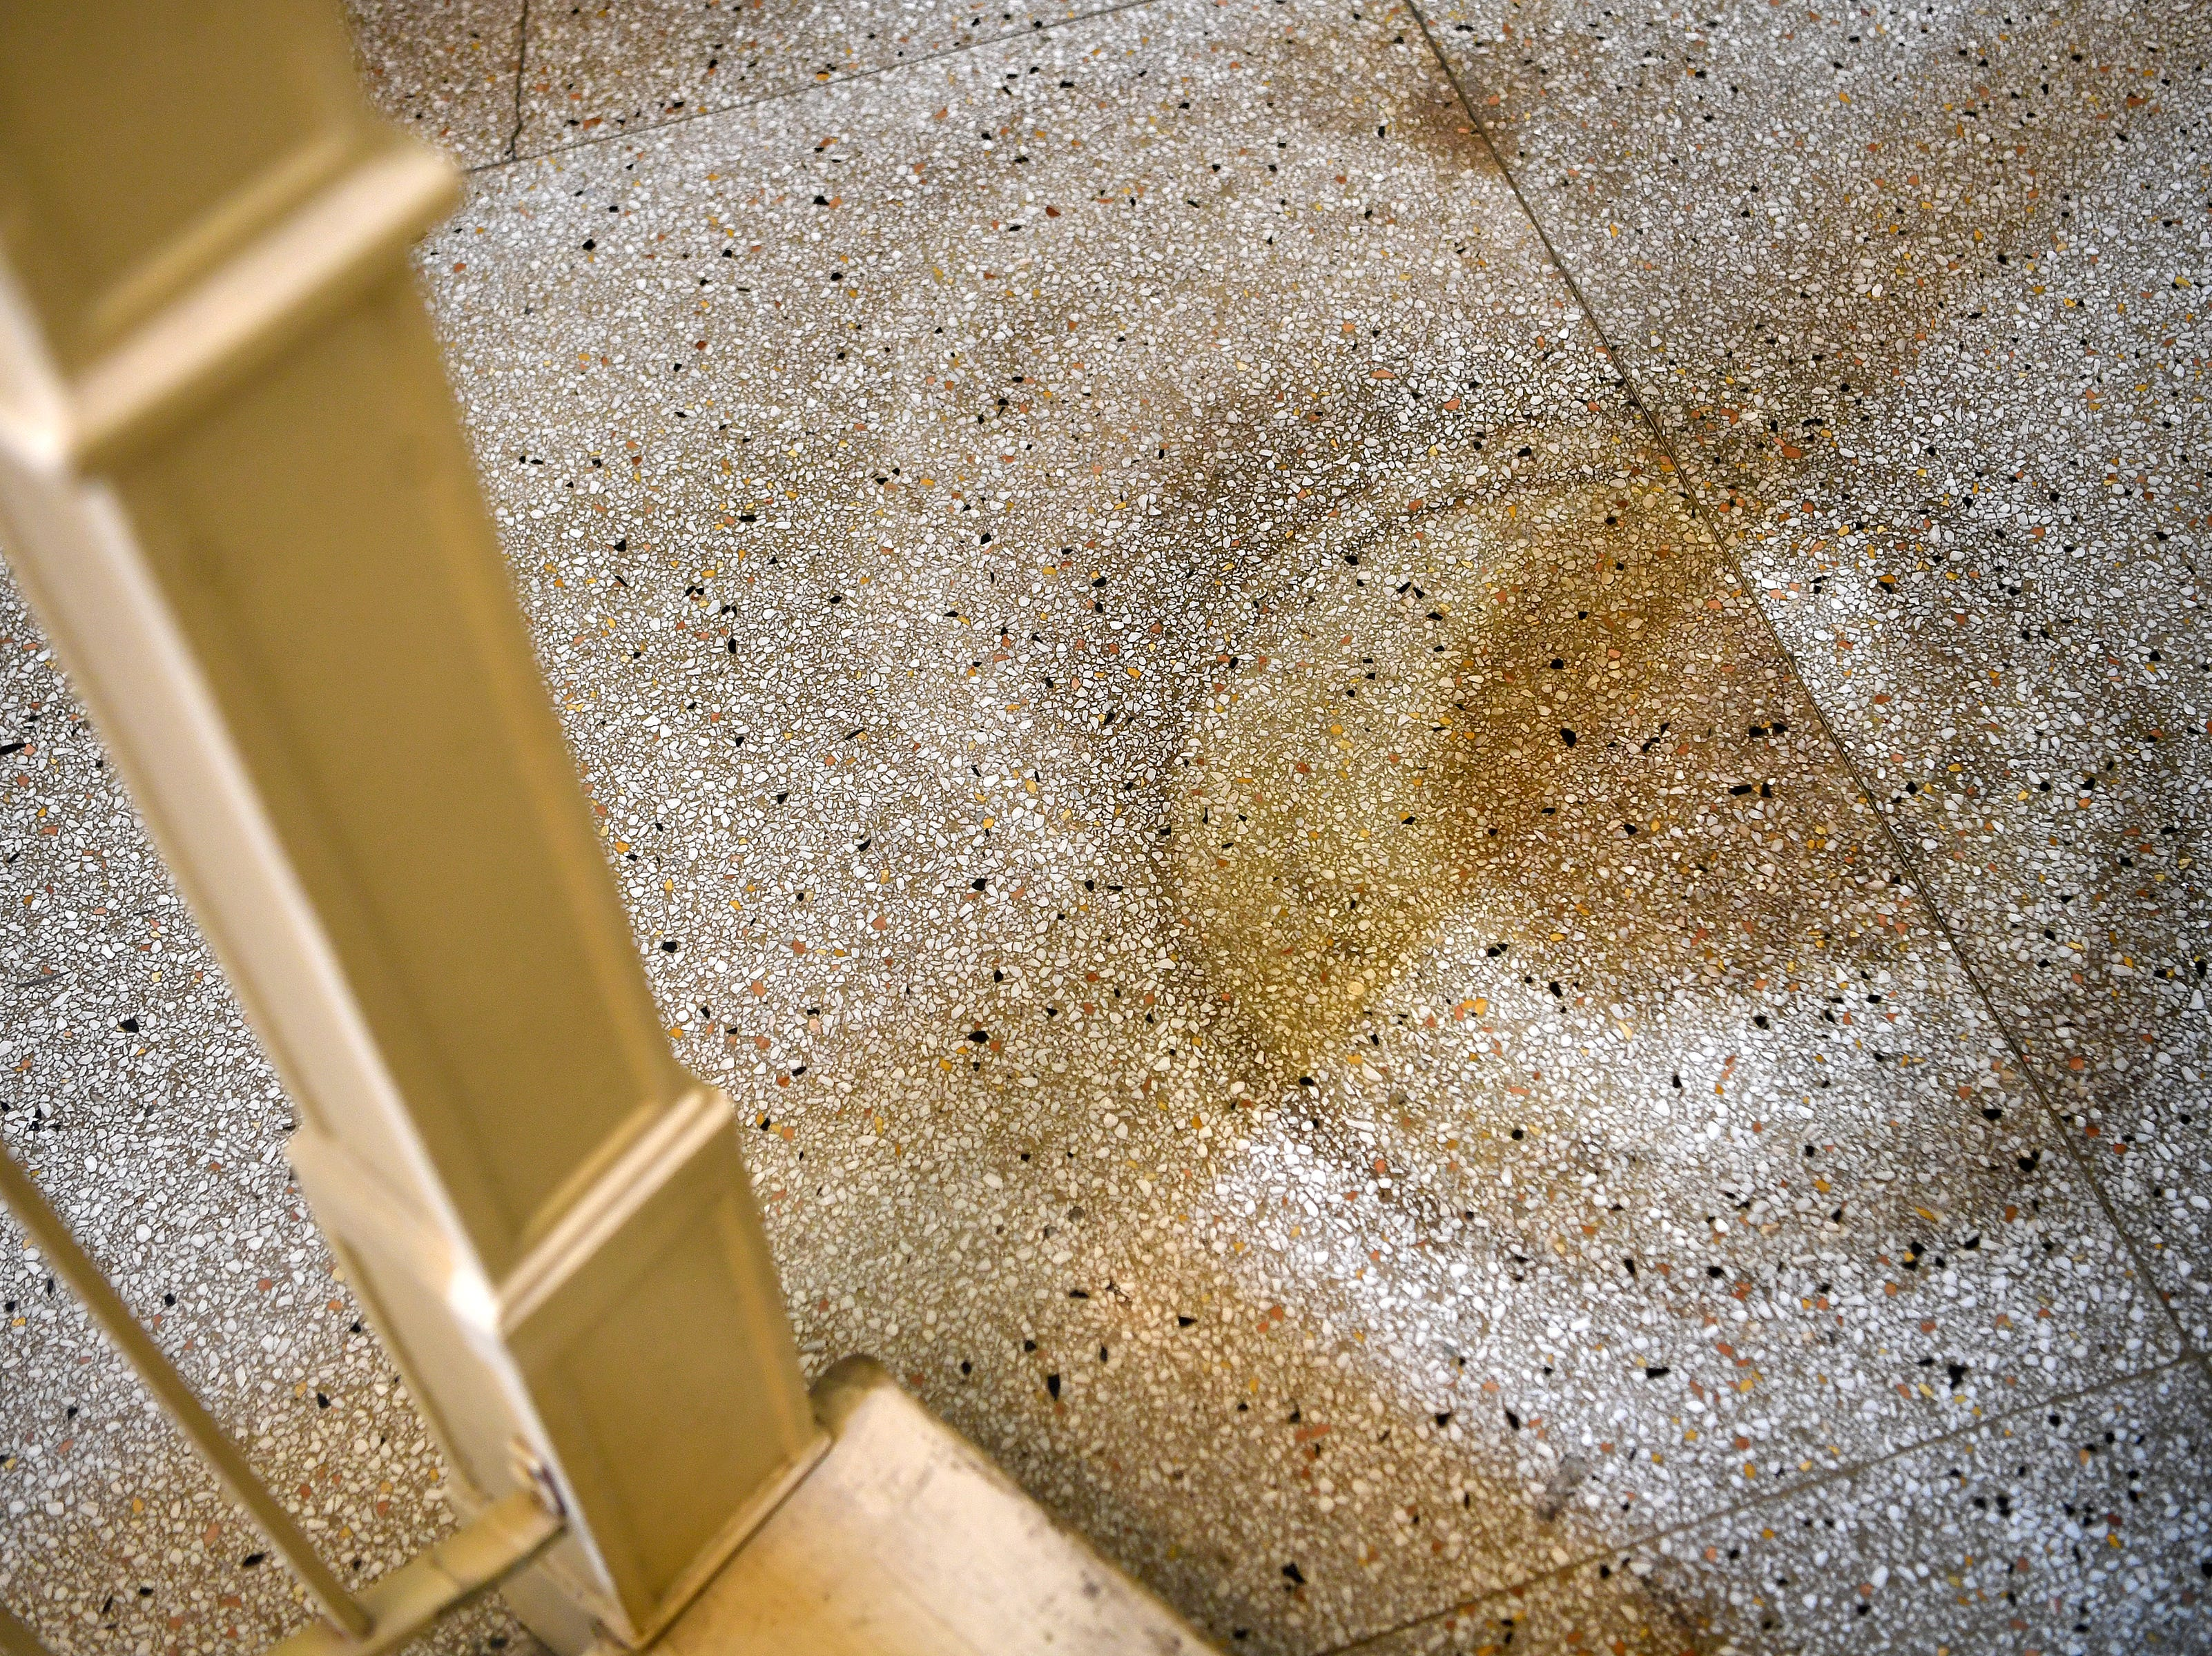 Damage from an old barber's chair marks the floor of the Flatiron Building downtown. There was once a barber shop in that part of the building.